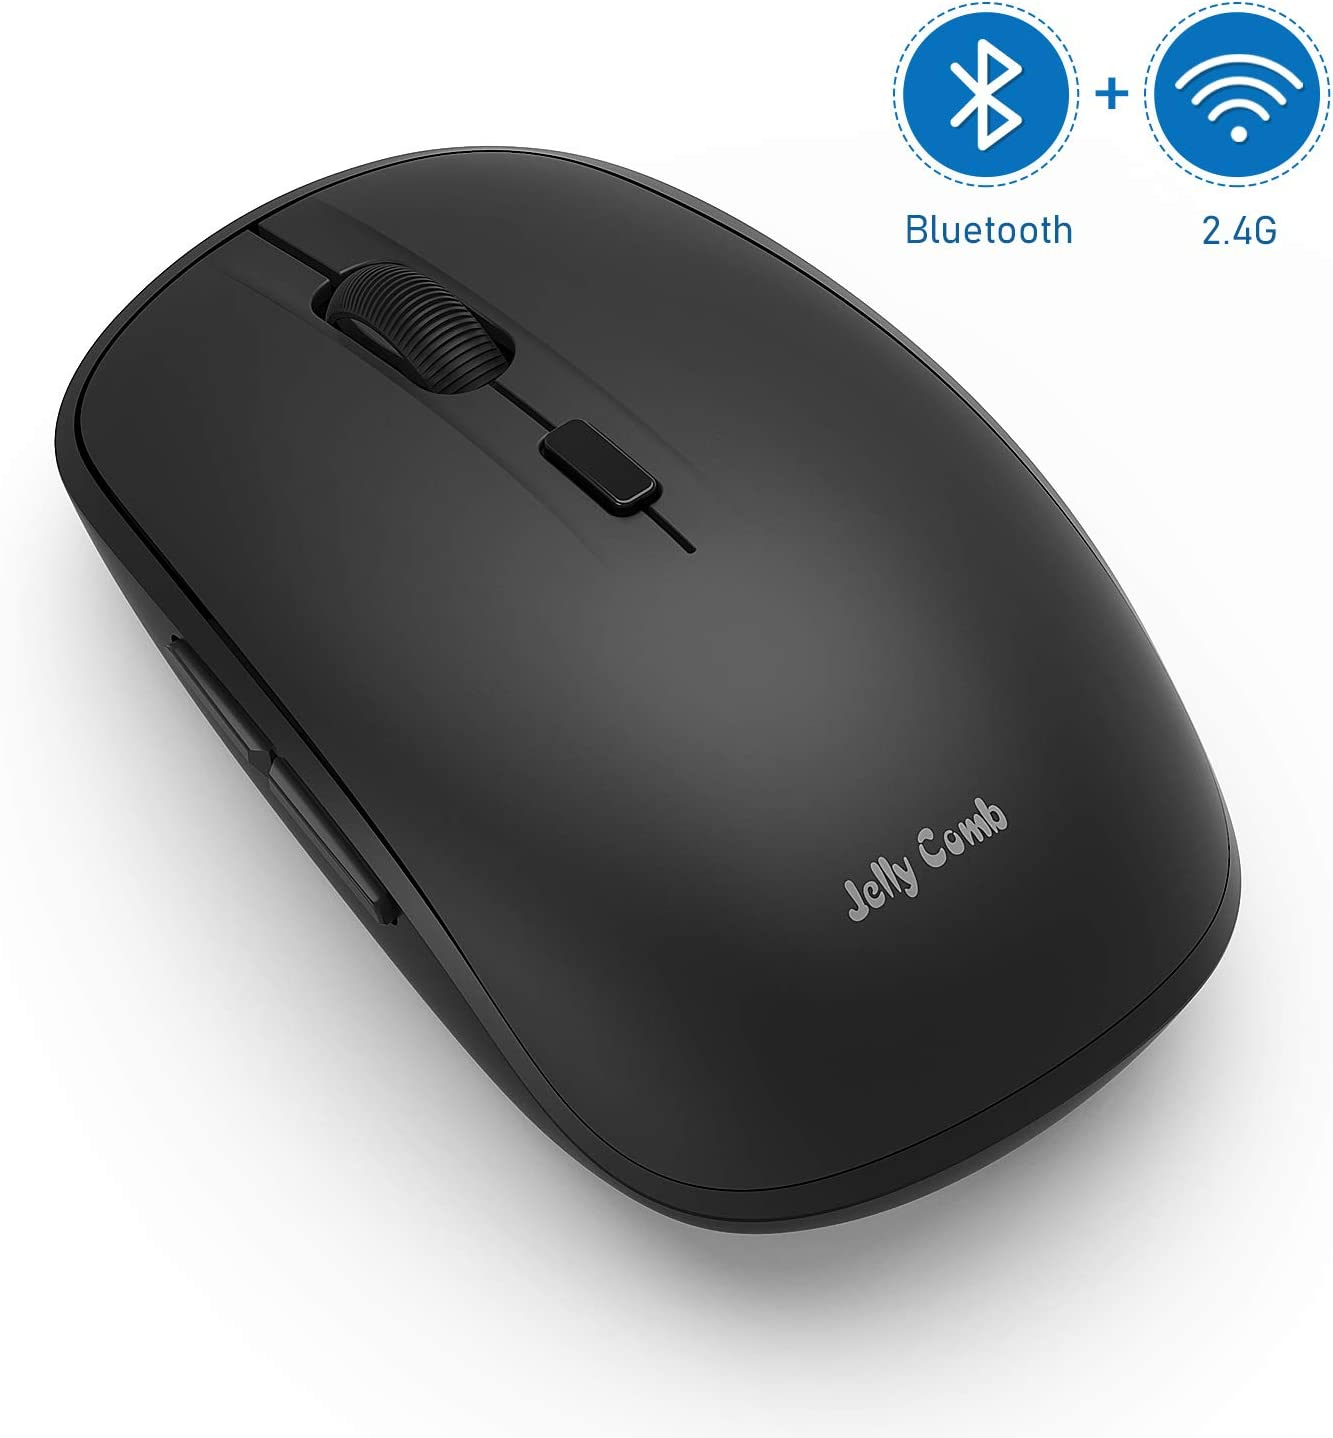 Bluetooth Mouse, Jelly Comb MS023 Wireless Dual Mode (Bluetooth 4.0 + USB) Computer Mice, 3 Adjustable DPI Levels, 6 Buttons Compatible for Windows/iPad/iPhone/Mac OS/Android